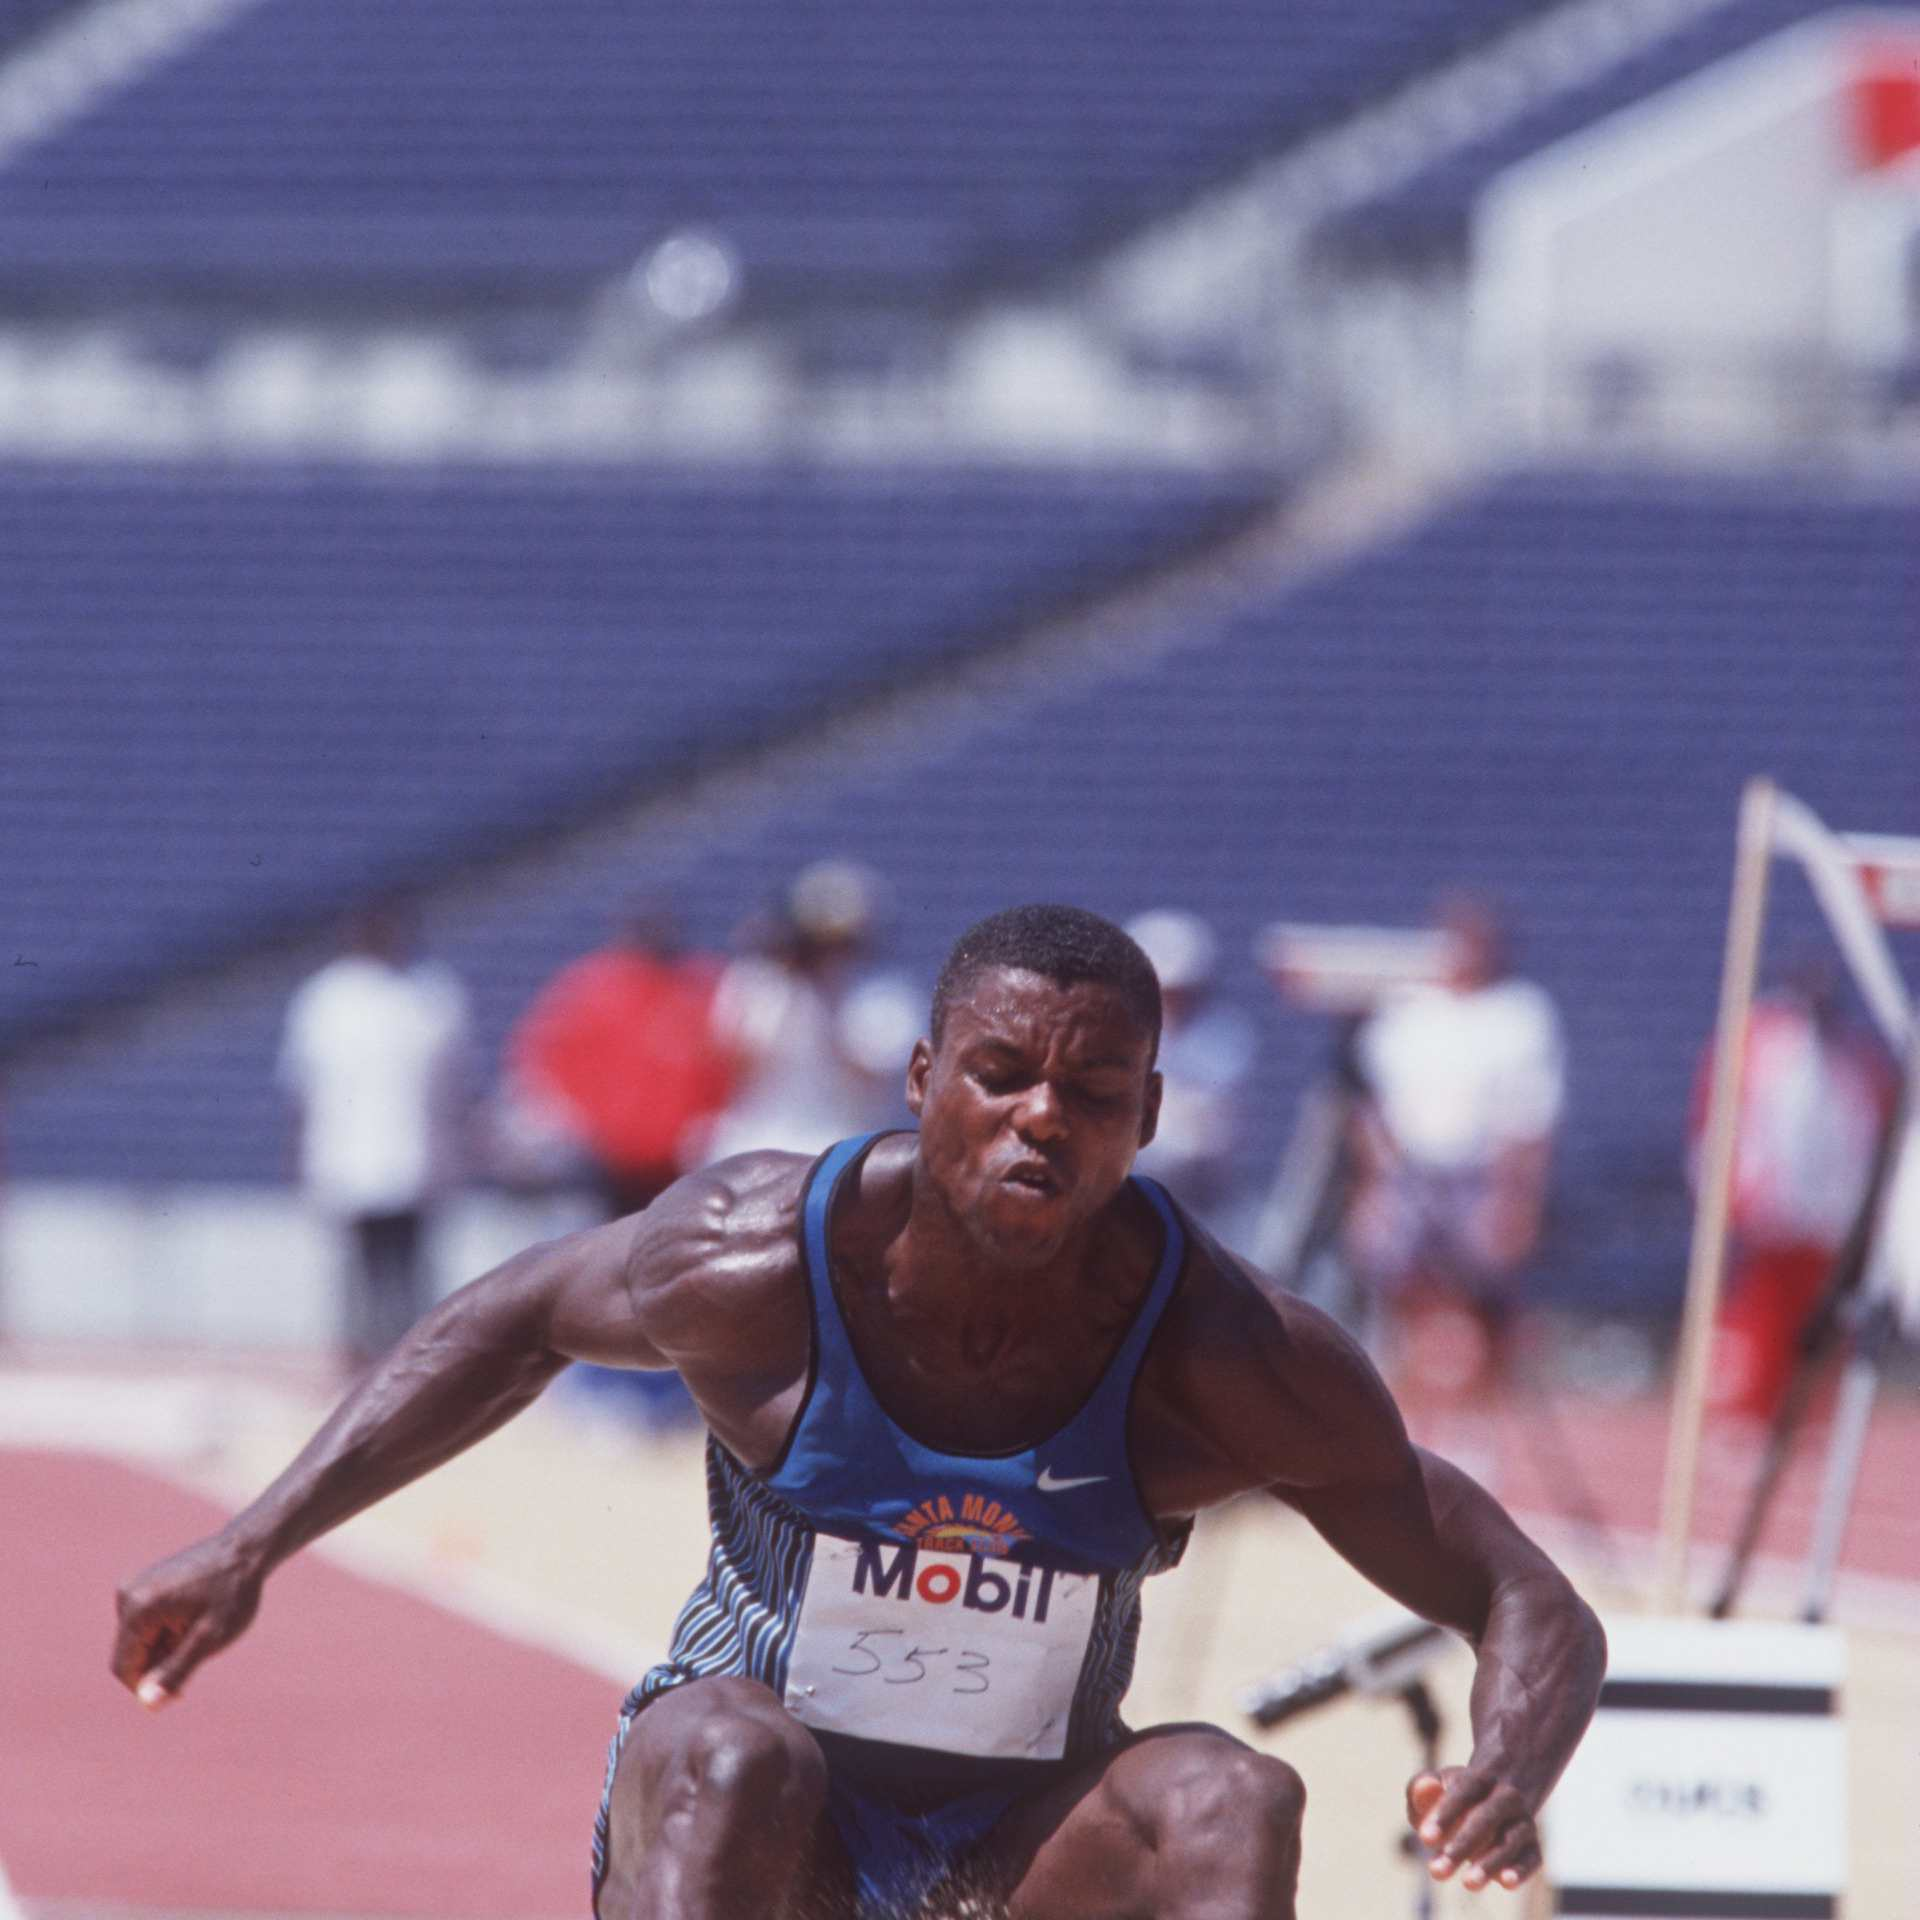 Olympian Carl Lewis of the USA in action in the long jump event